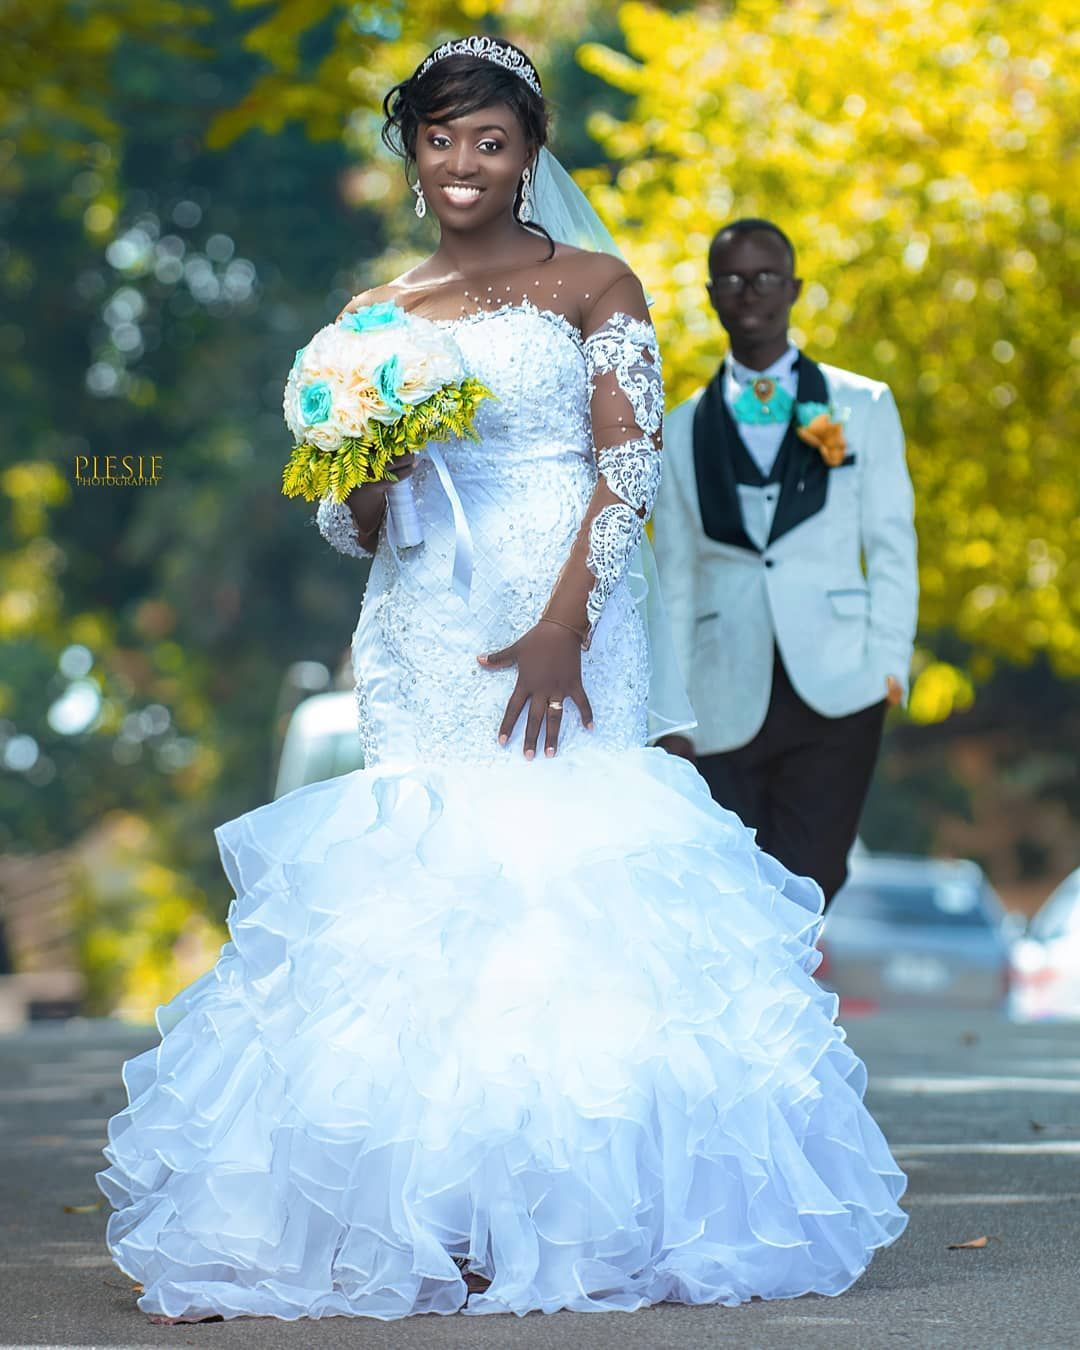 When love finds love, strength is always authentic....MRS AND MRS AMOAKO with oove....💞💞💞⚡💍💍 #bellaghanaweddings #bellanaijaweddings #weddingdiaries #weddings #africanweddingdresses #couplelove #weddings #africanweddingdresses #africanweddingworldwide #africanweddings #ghanatraditionalweddings #ghanaweddings👫💑💒💍❤️ #ghweddingsonpoint #Piesiephotography @couplegoals @trendingafricanweddings @weddinggallerygh @weddinggallerygh @gh_engagement @ghanawedding @ghanaweddings @ghanaweddingphotos